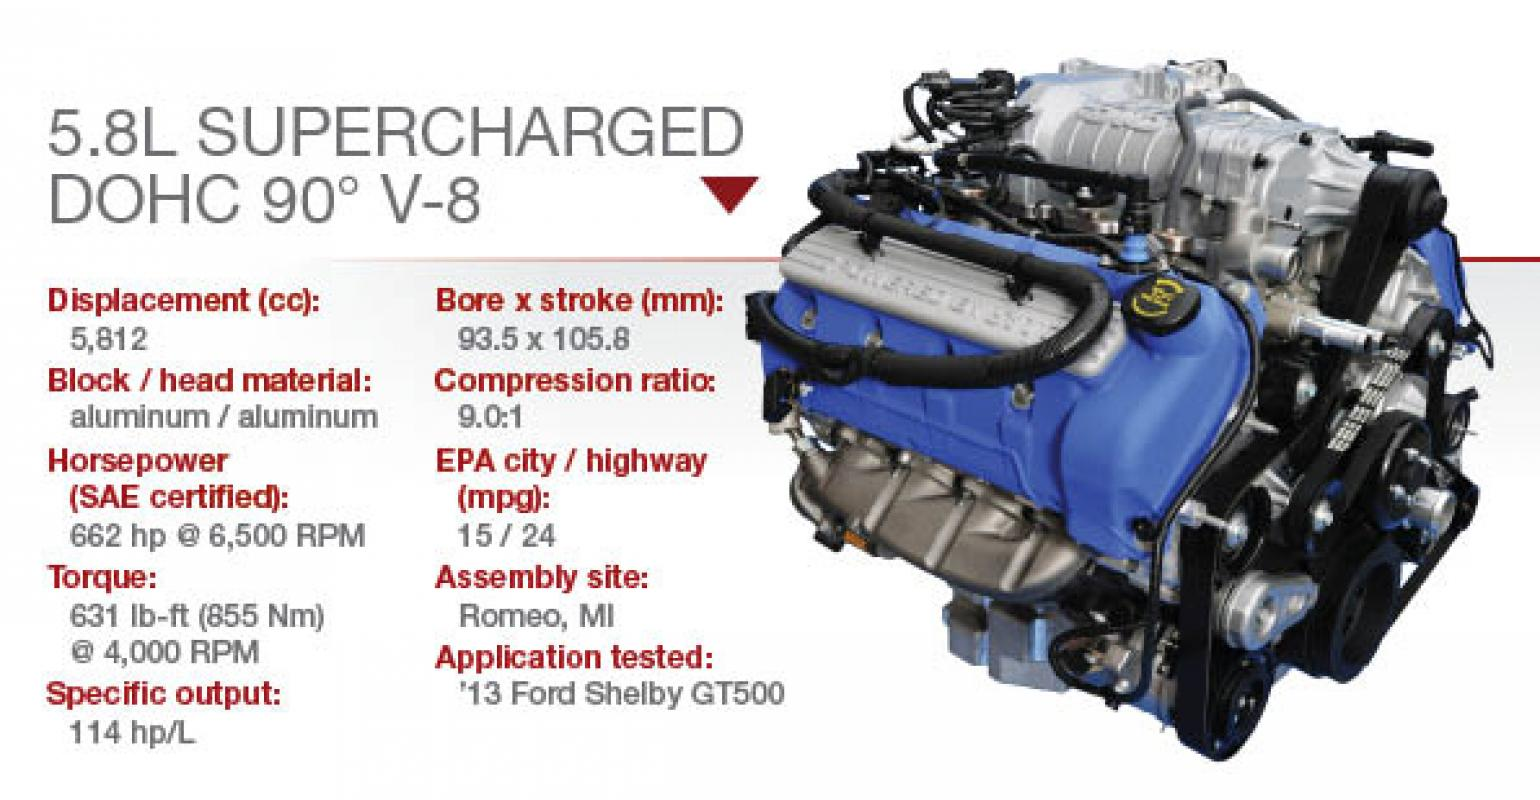 Ford 5.8L Supercharged DOHC V-8